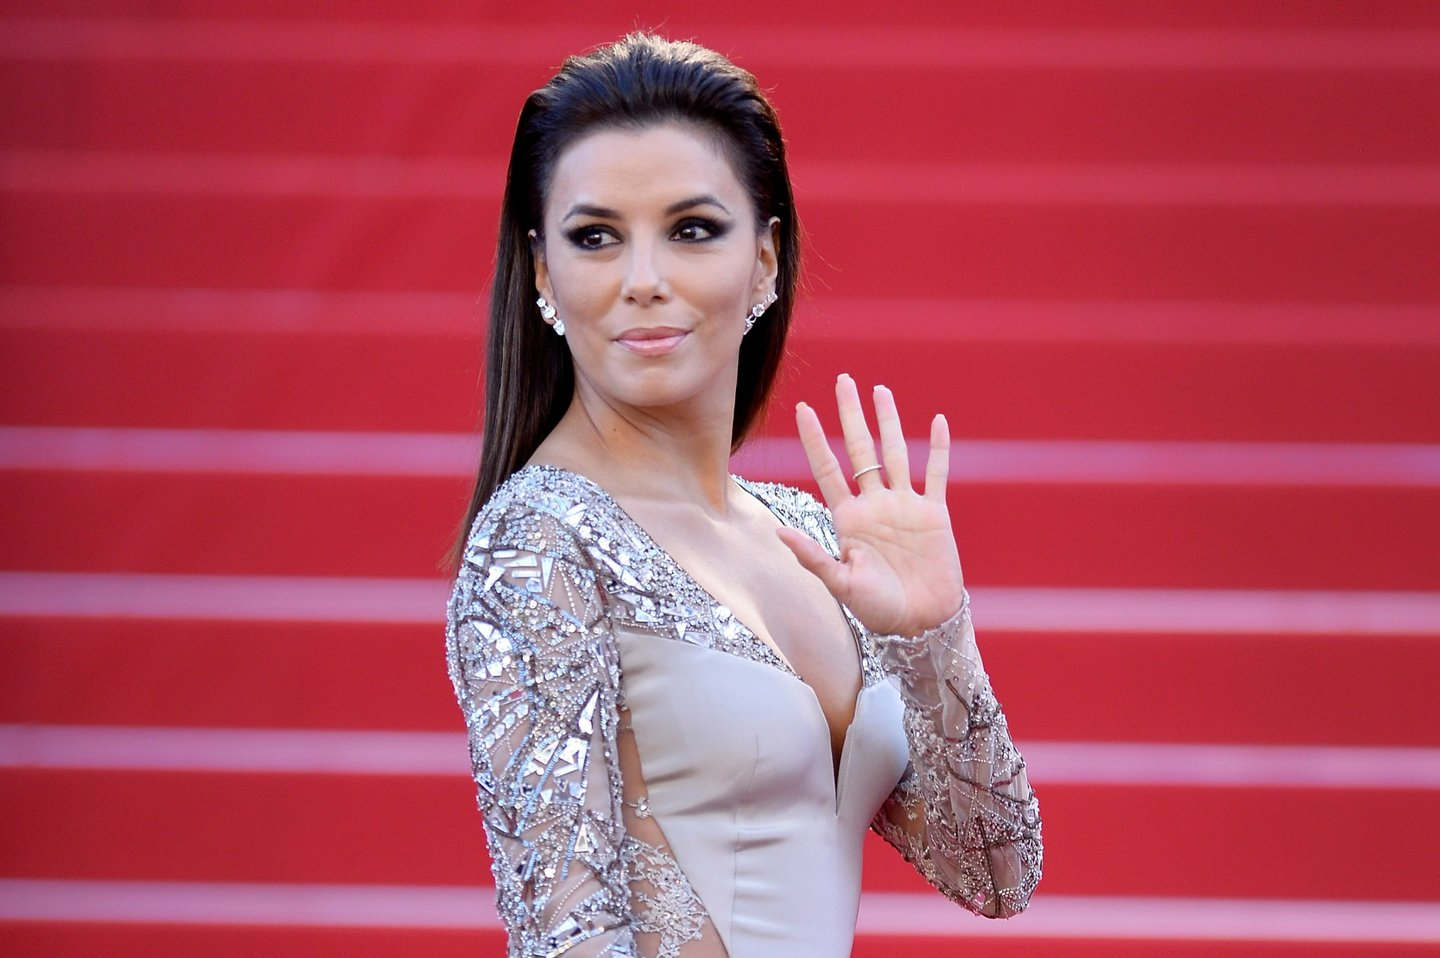 "CANNES, FRANCE - MAY 18: Eva Longoria attends the Premiere of ""Inside Out"" during the 68th annual Cannes Film Festival on May 18, 2015 in Cannes, France. (Photo by Pascal Le Segretain/Getty Images)"